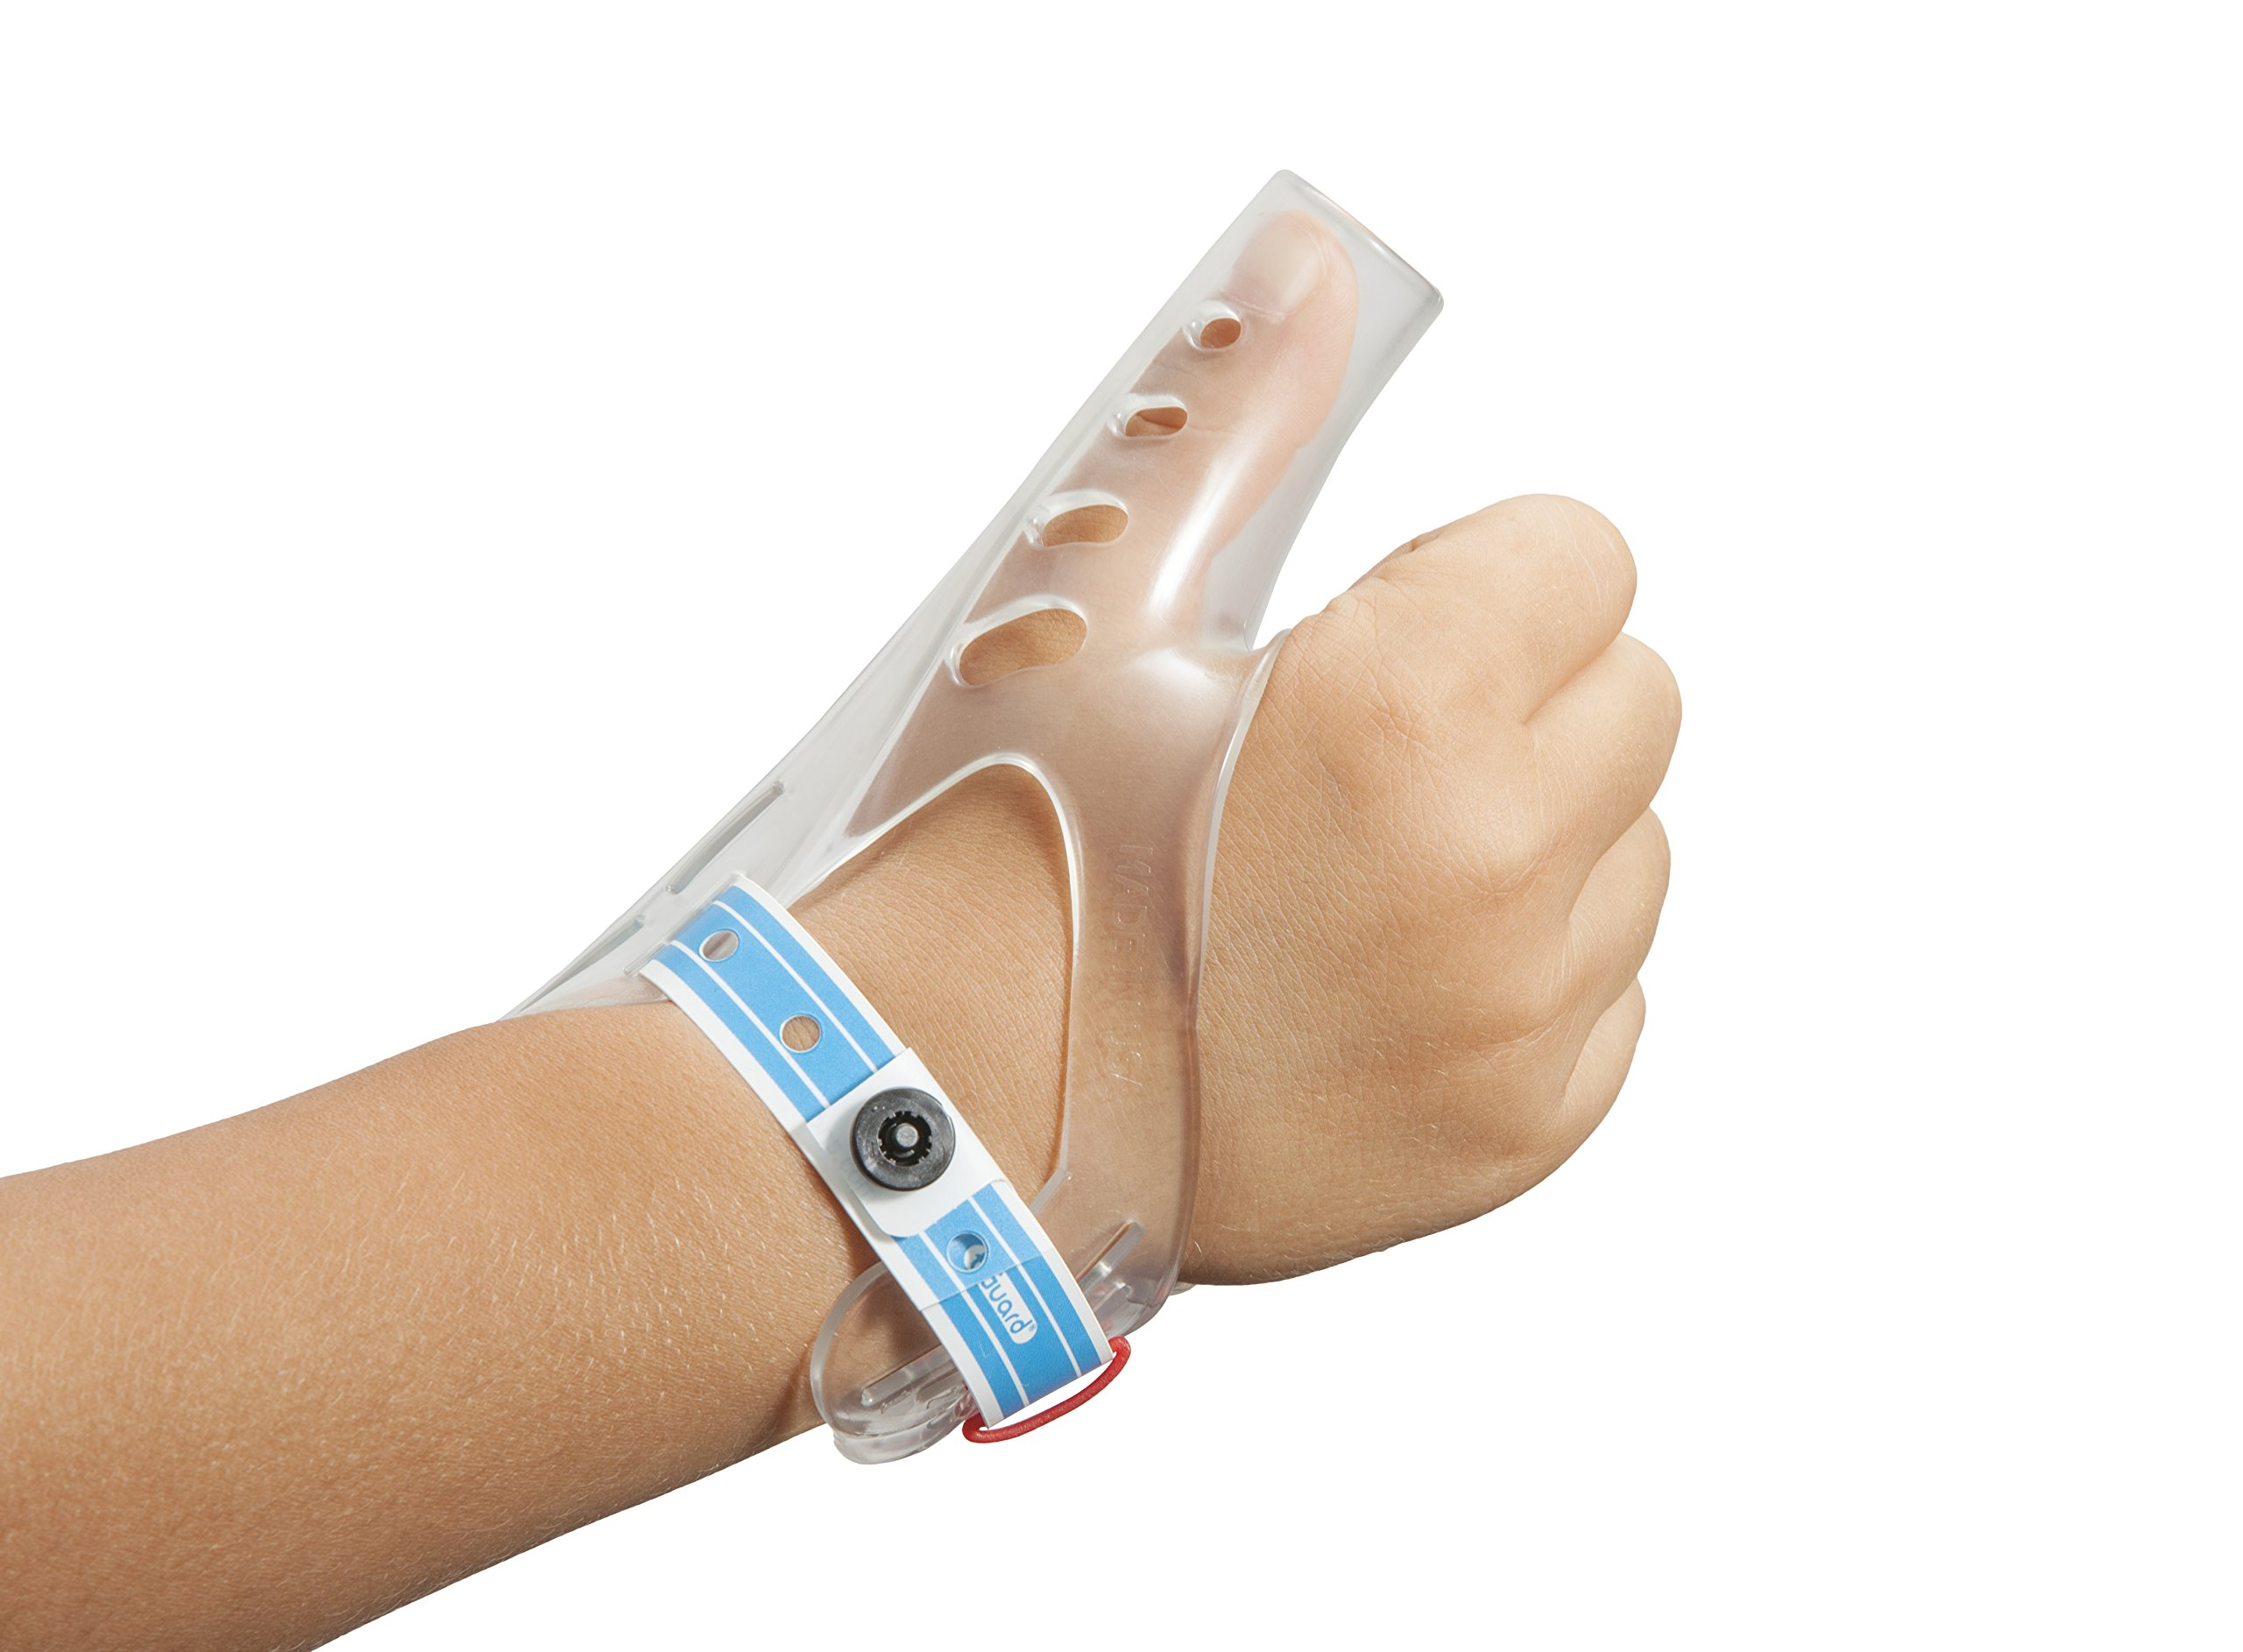 TGuard AeroThumb, Treatment Kit to Stop Thumbsucking (Small (Ages 0-4)) by TGuard (Image #2)